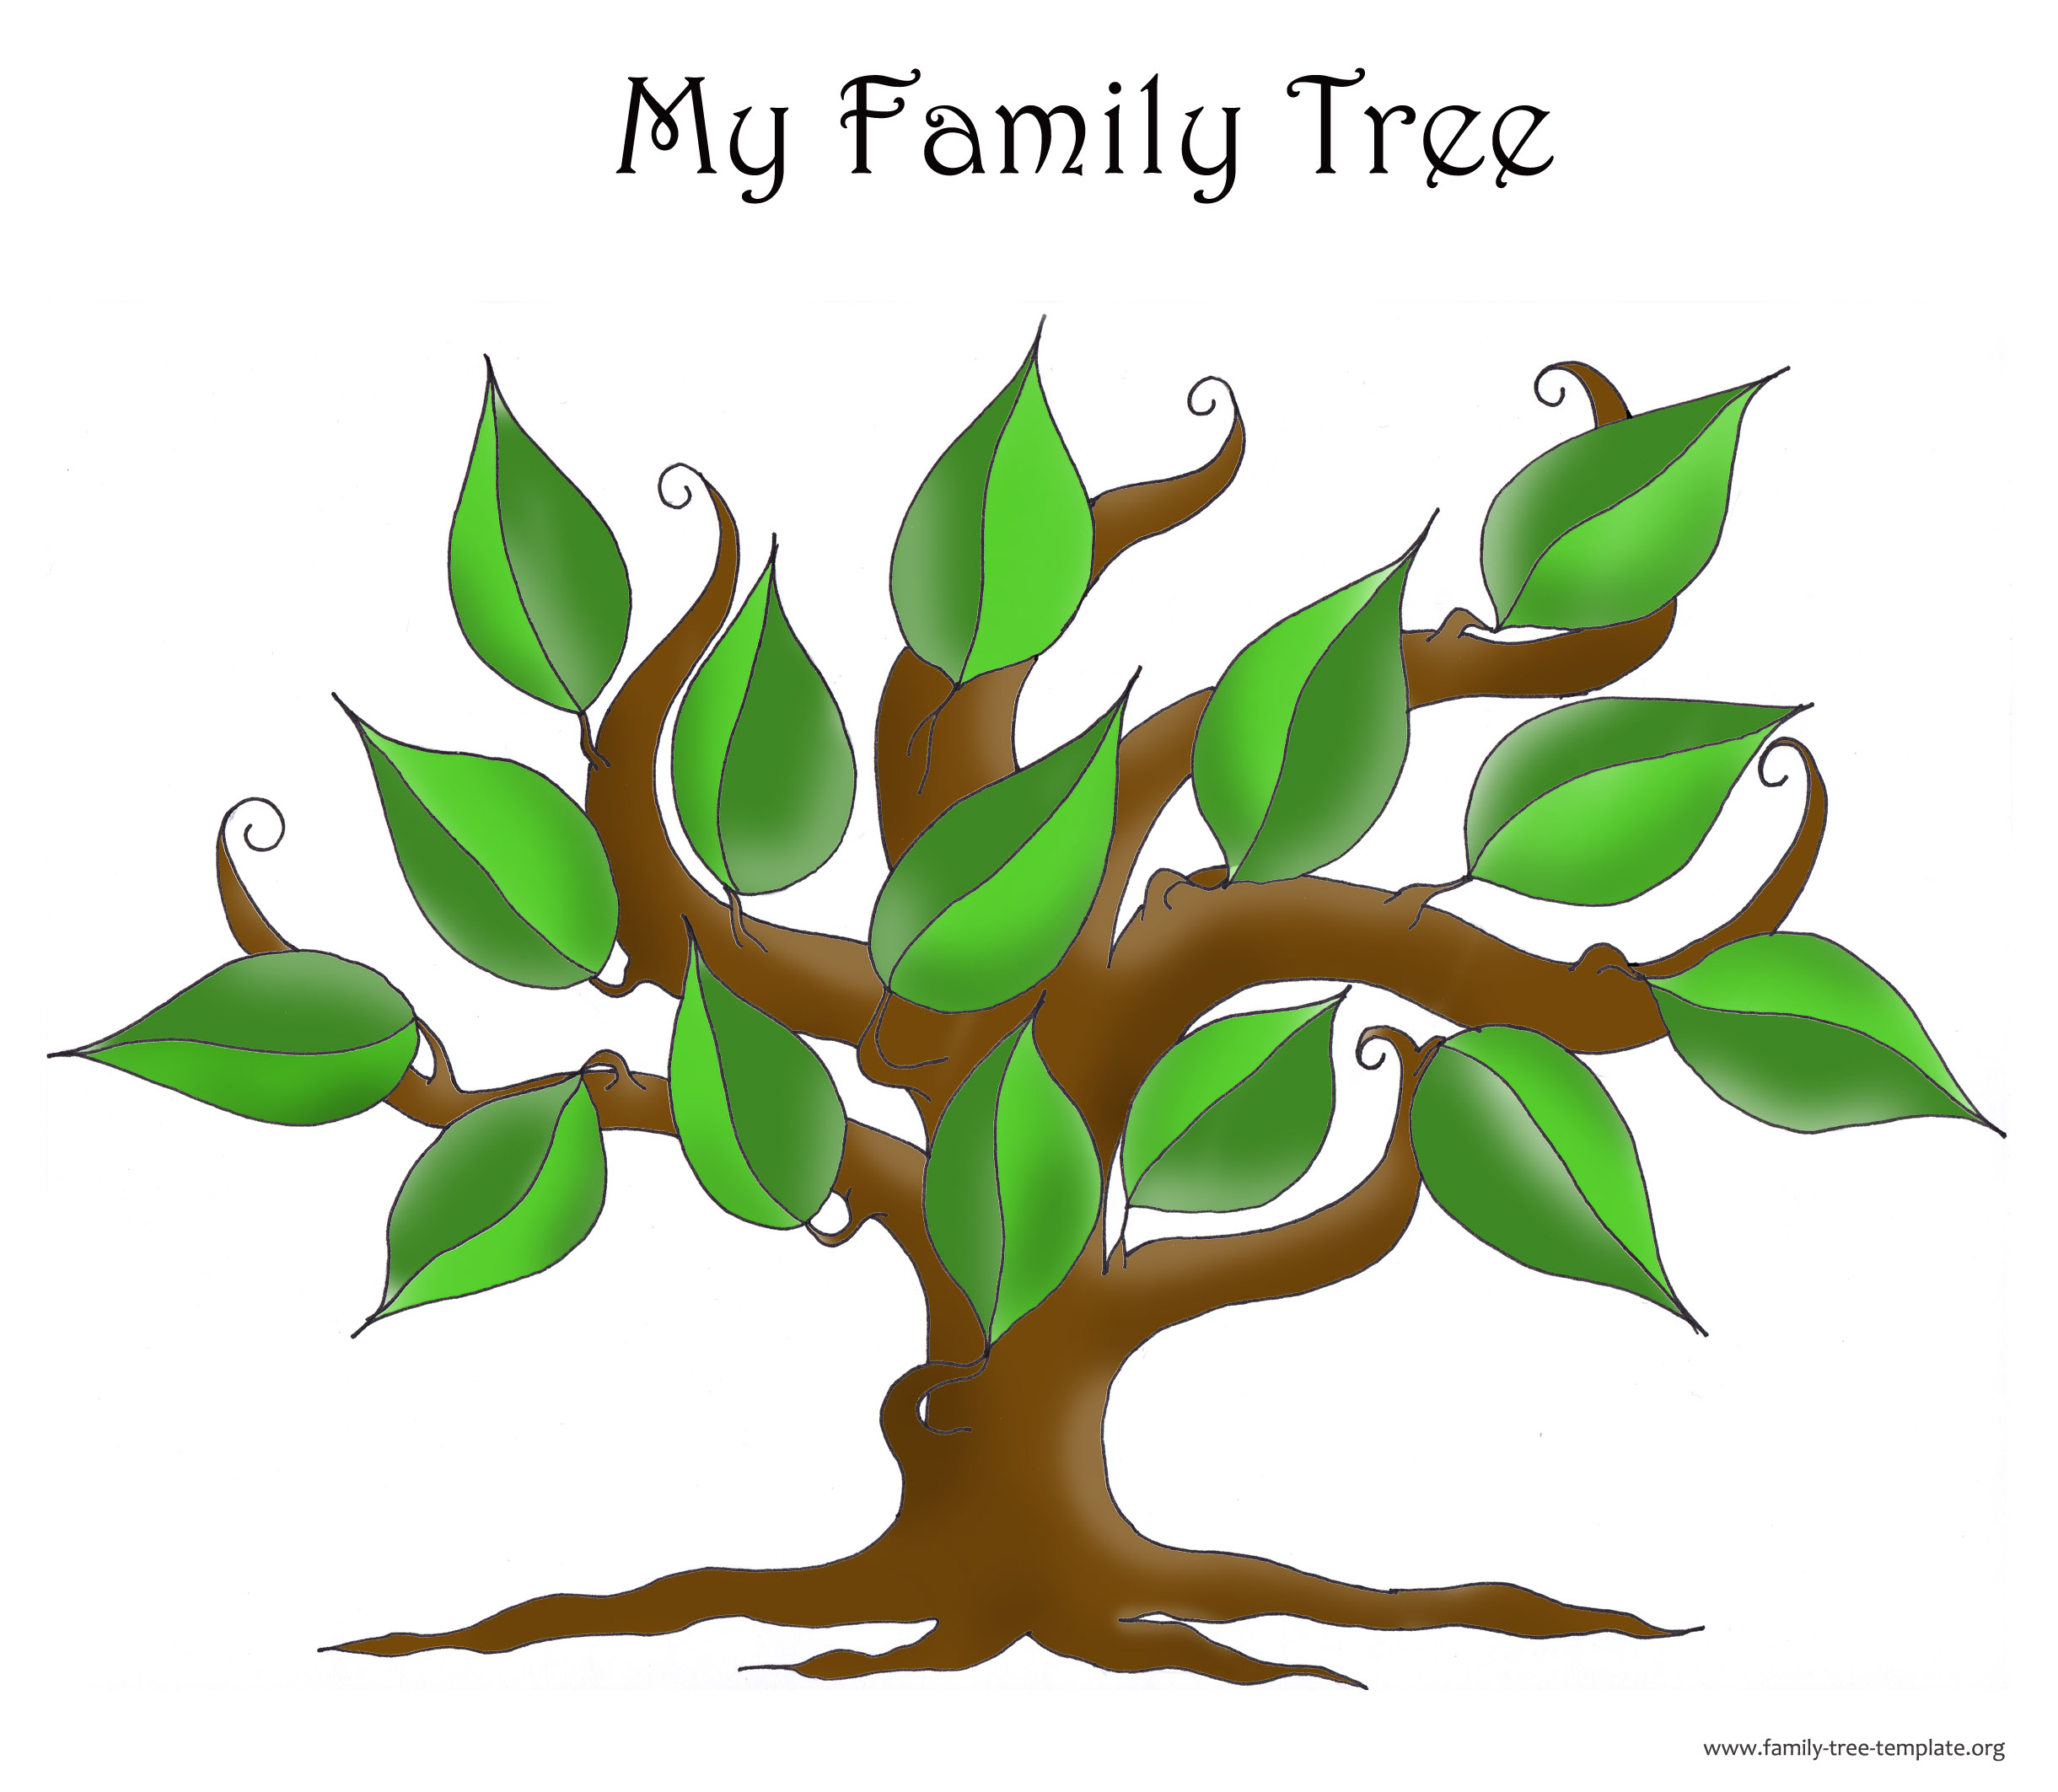 genealogy tree with green leaves family tree template